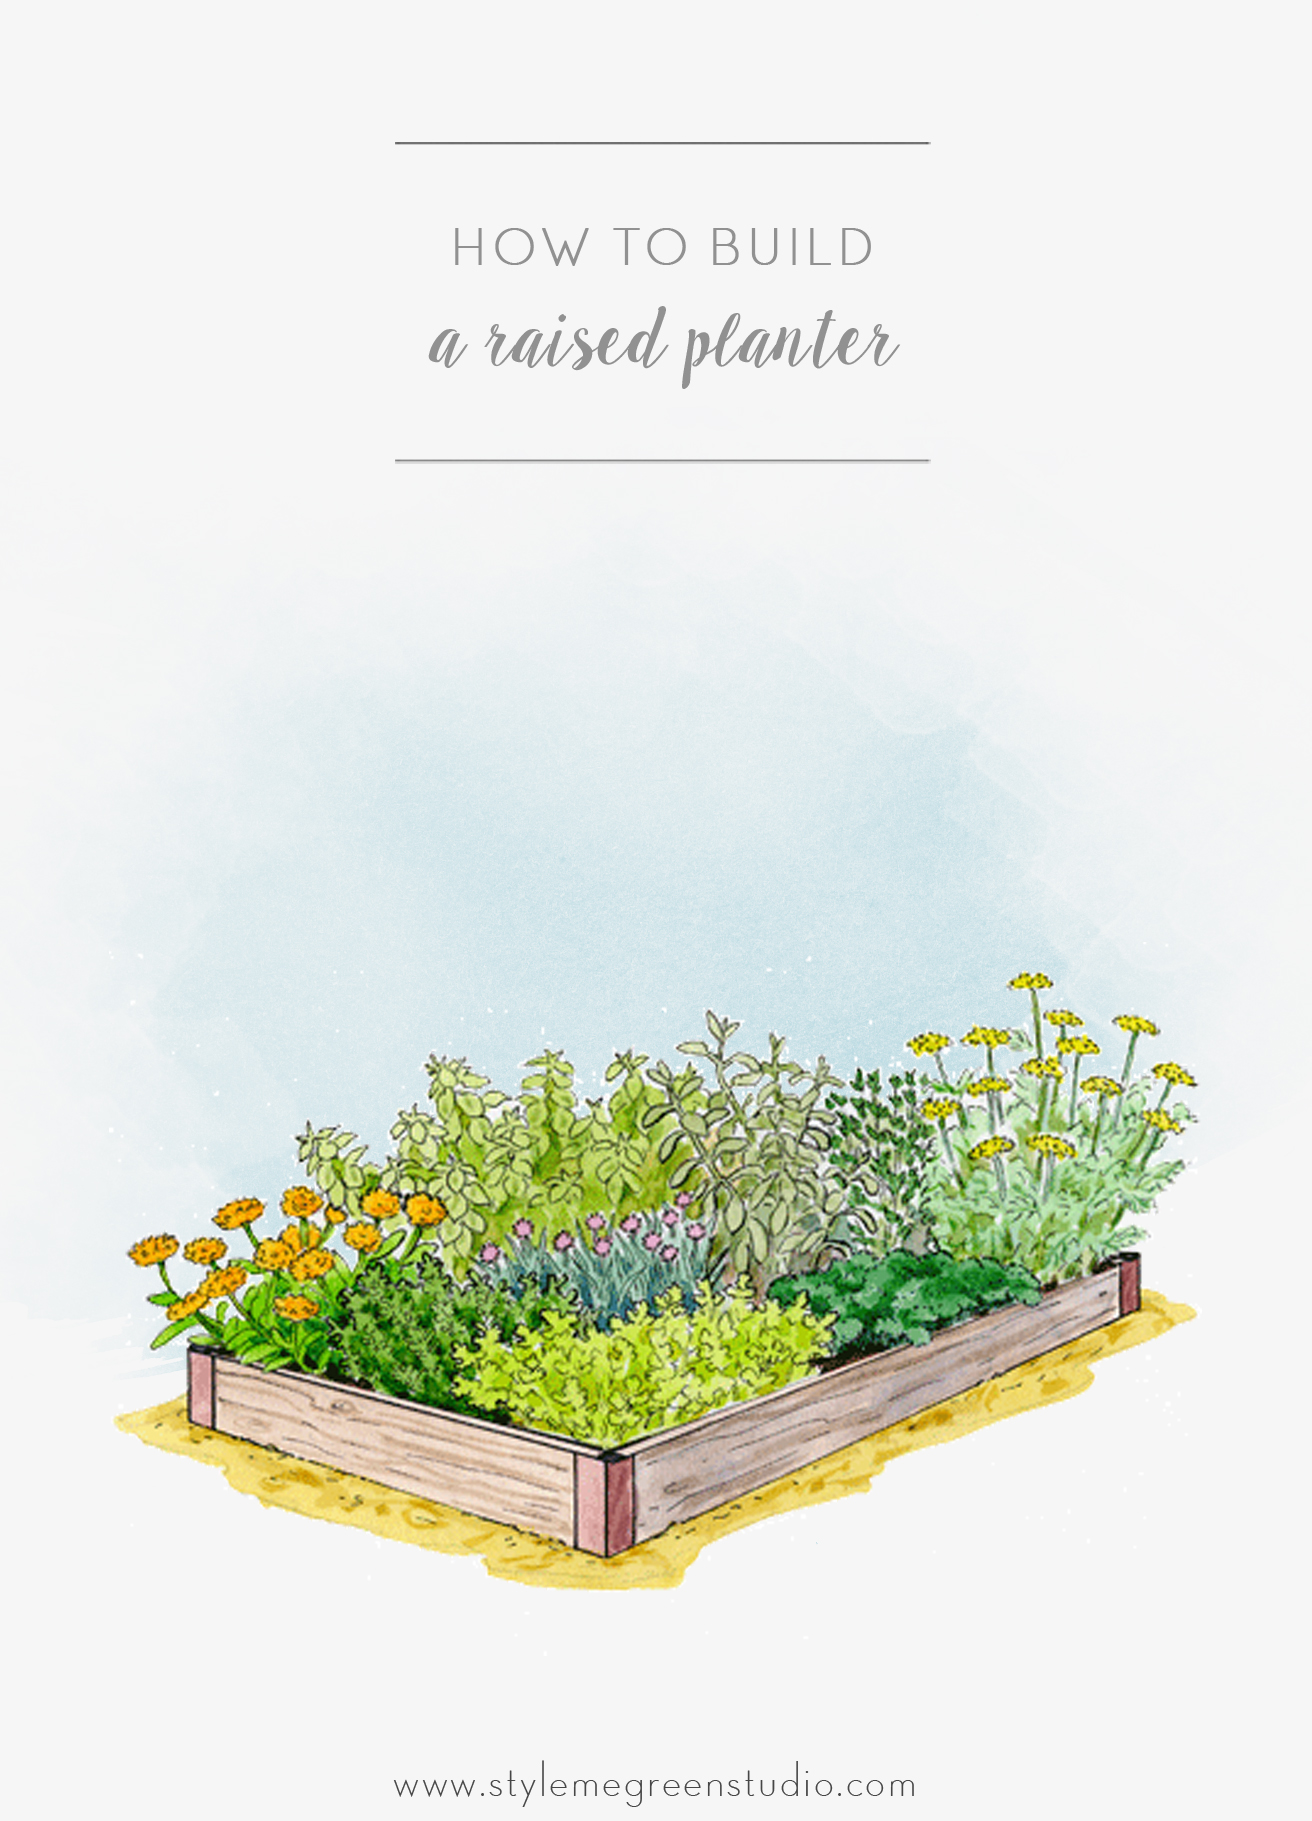 how to build a raised planter